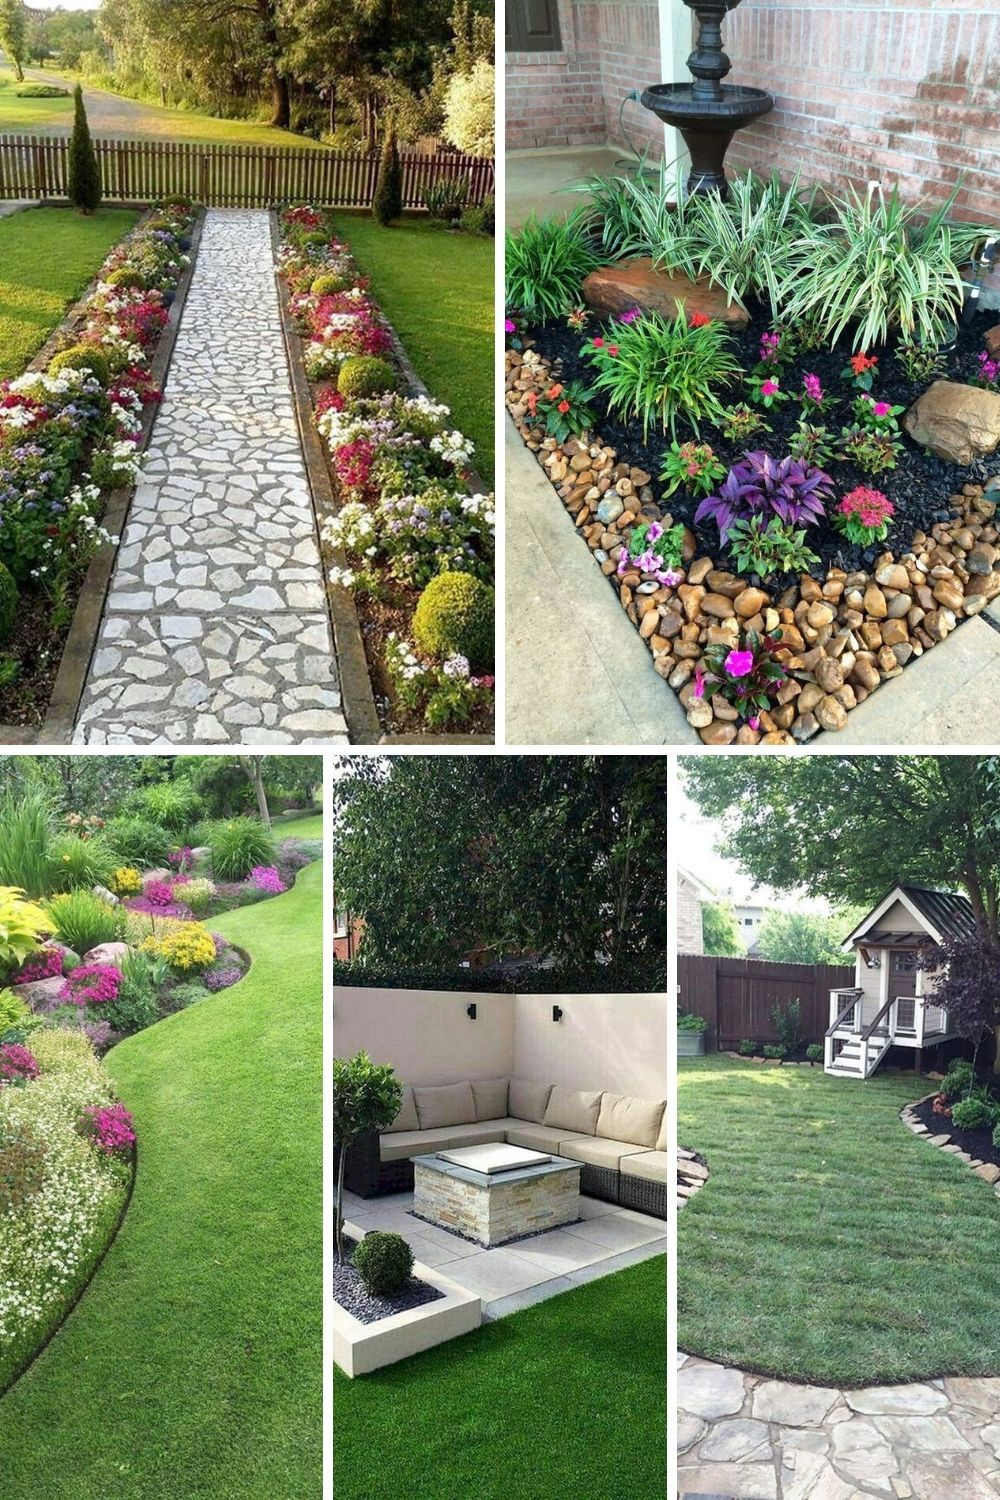 Best Front Yard And Backyard Landscaping Ideas On A Budget Frugal Living Amazing Gardens Backyard Landscaping Landscaping Inspiration